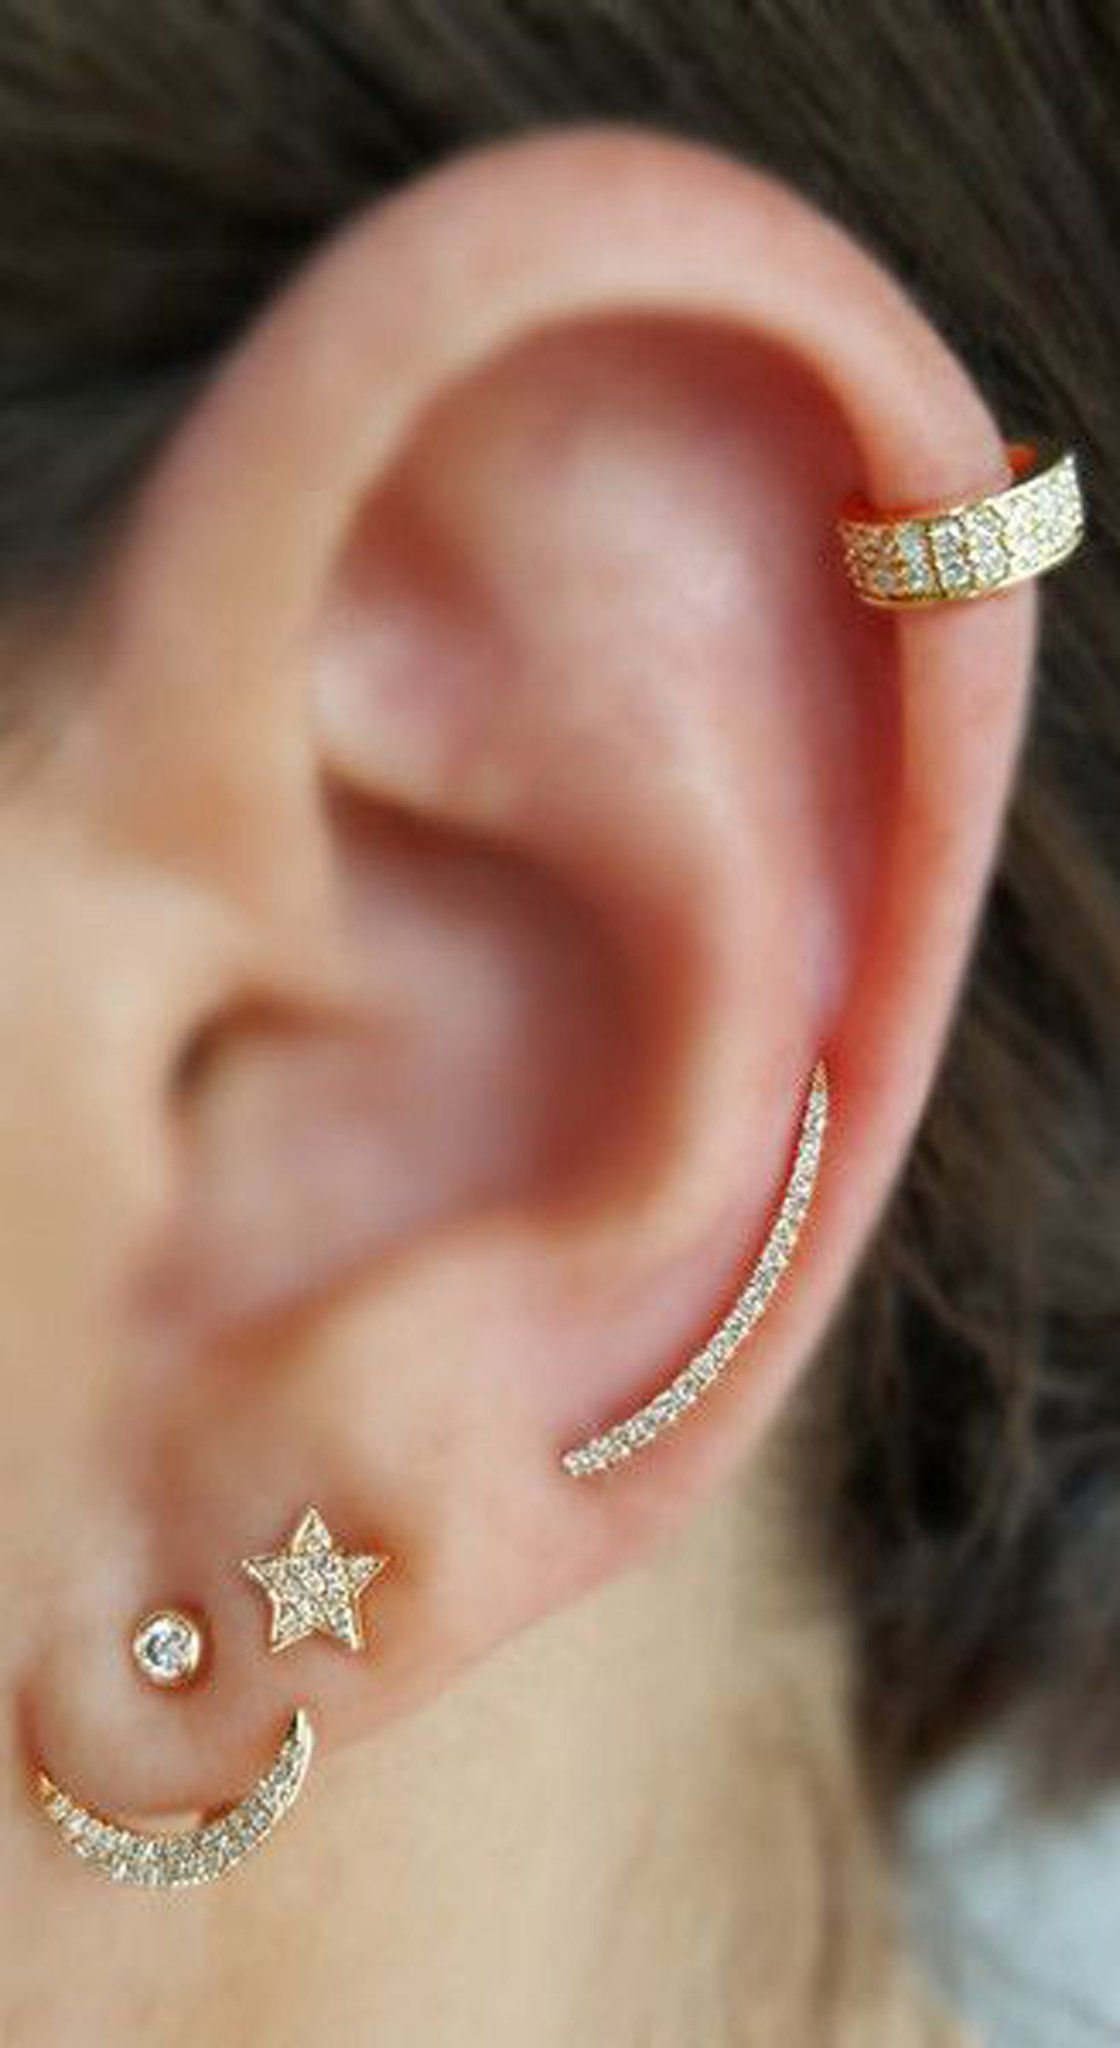 Ring In Kaars.Classy Gold Ear Piercing Jewelry Ideas Combinations At Mybodiart Com